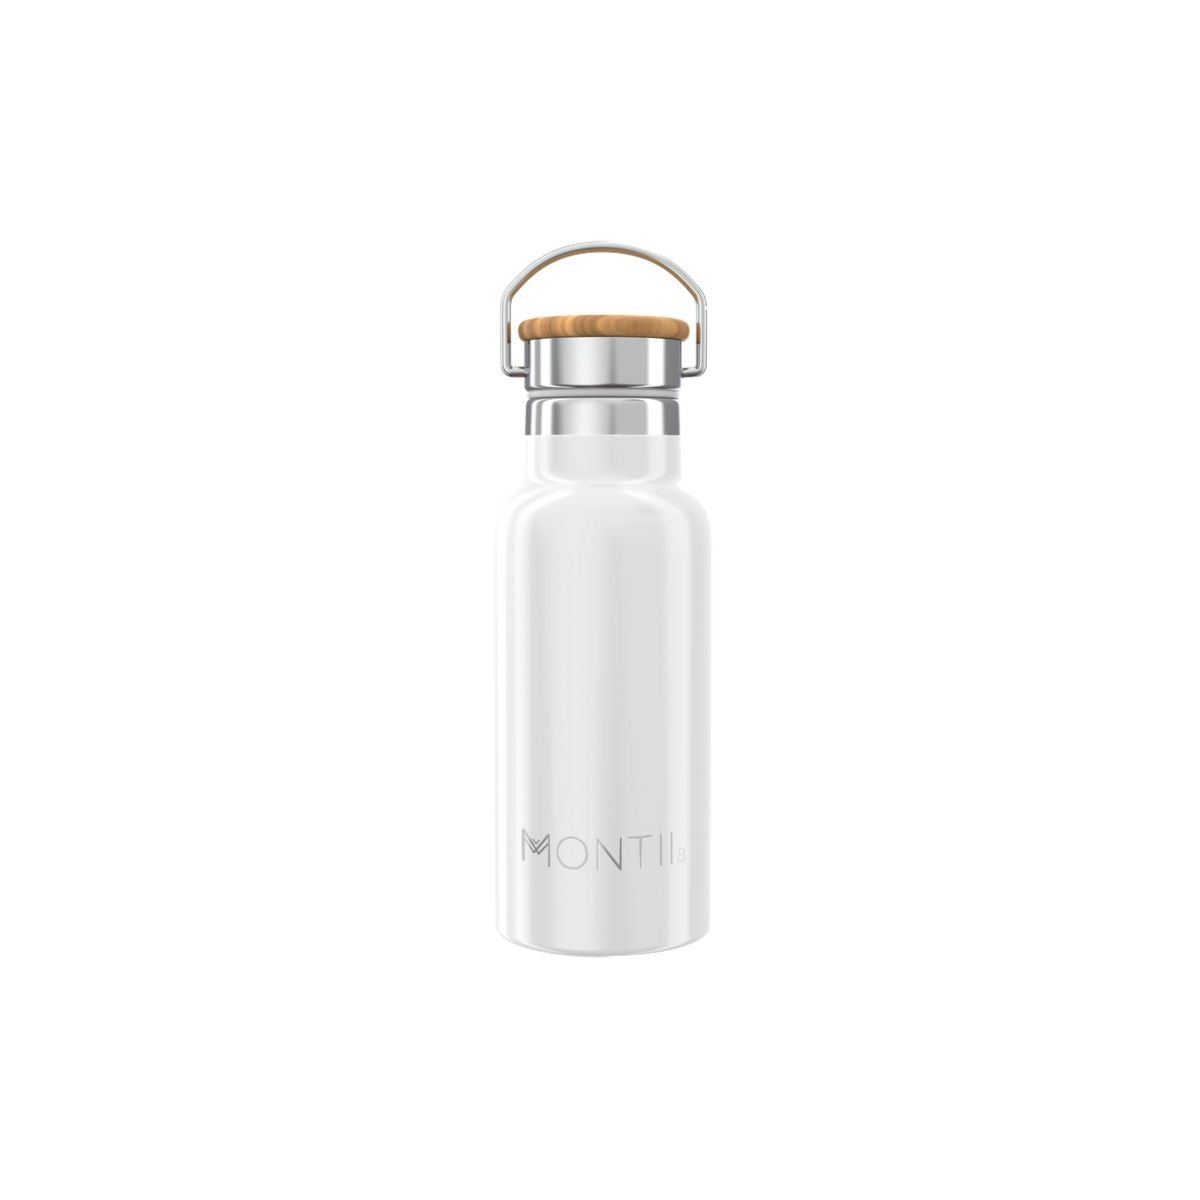 MontiiCo Handbag Hero - White-Drink Bottle-Lunchbox Mini